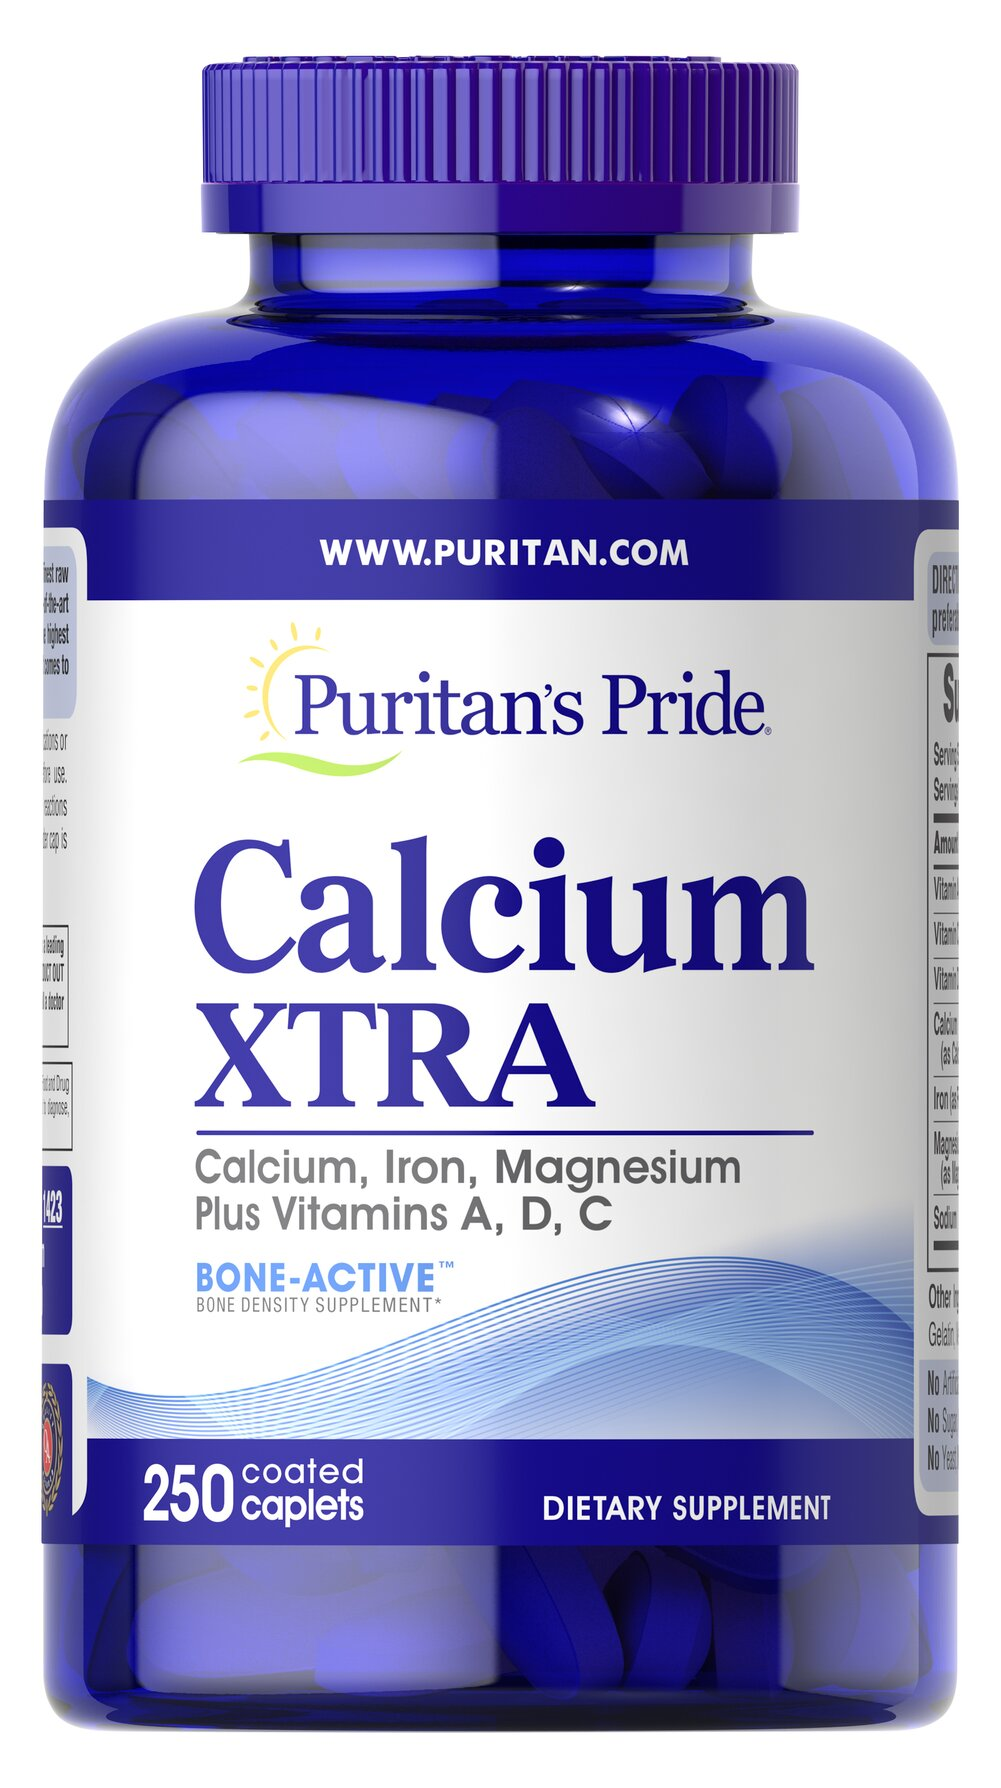 Calcium Xtra <p>Calcium is essential for building healthy bones and teeth.**  To be sure you are getting enough calcium, try Calcium Xtra tablets.  You get natural calcium plus added vitamins (vitamins A, C and D) and minerals (Iron and Magnesium) that work synergistically to give you maximum nutritional protection - in a NEW faster-acting formula.</p> 250 Caplets  $18.49